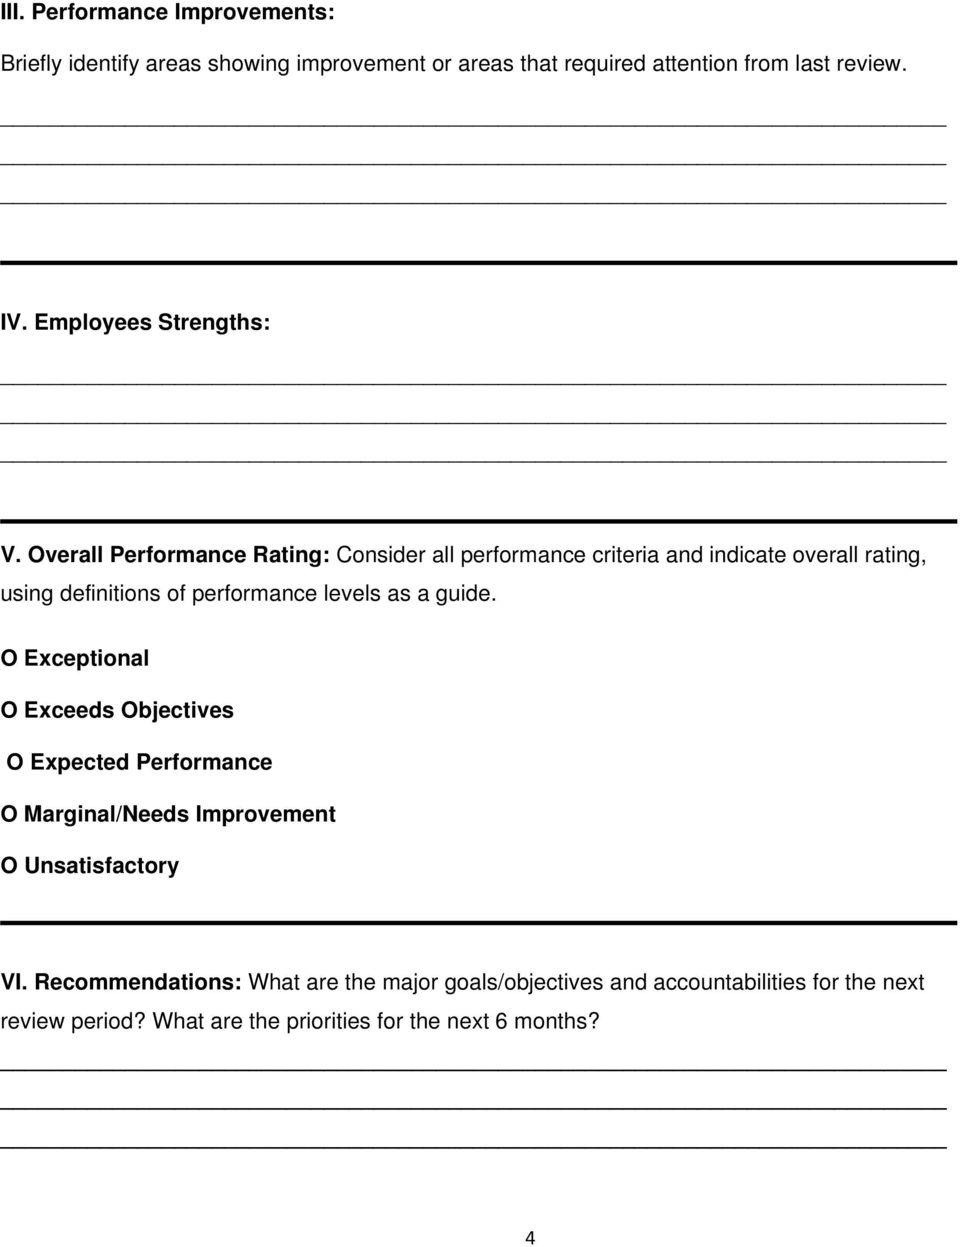 2015 Performance Appraisal Template Samples - PDF